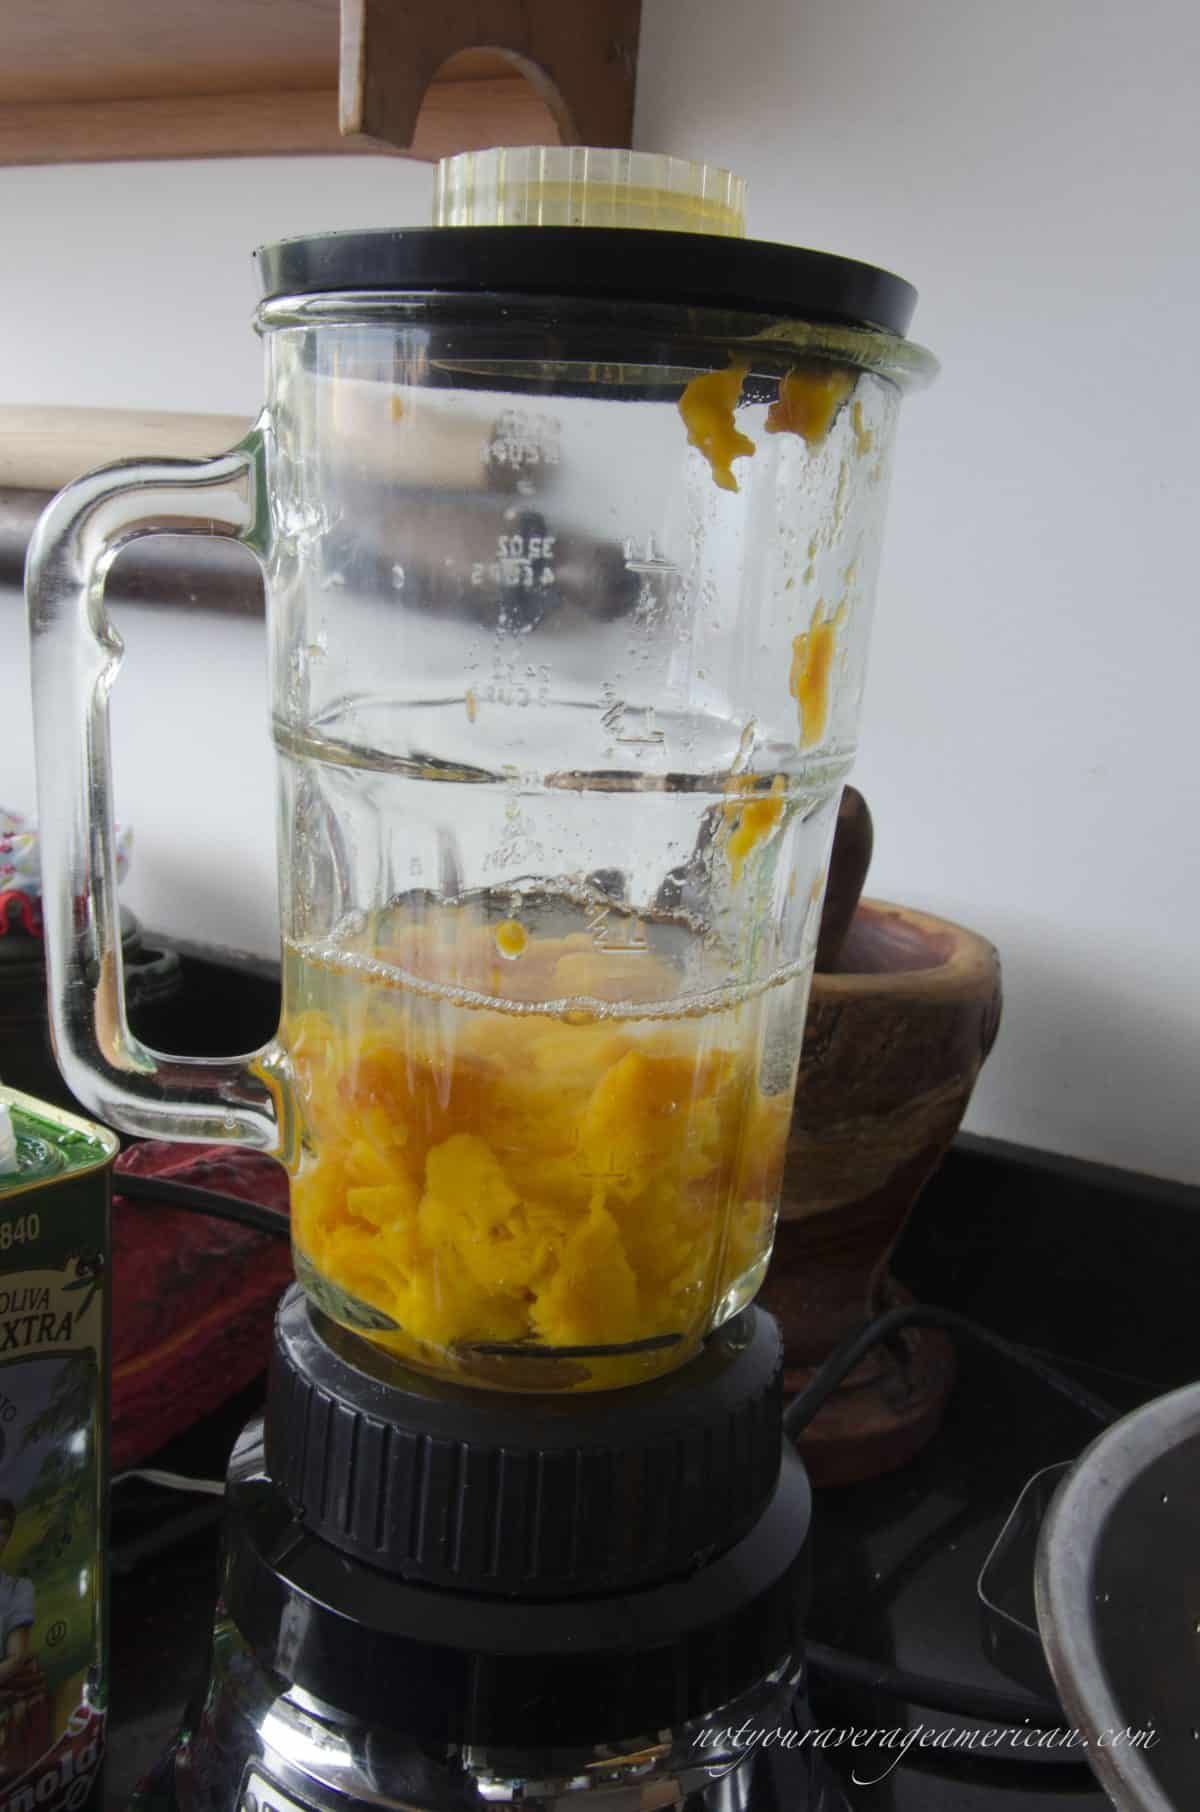 Tree Tomatoes and Water in Blender, Ecuadorian Hot Sauce with Ginger